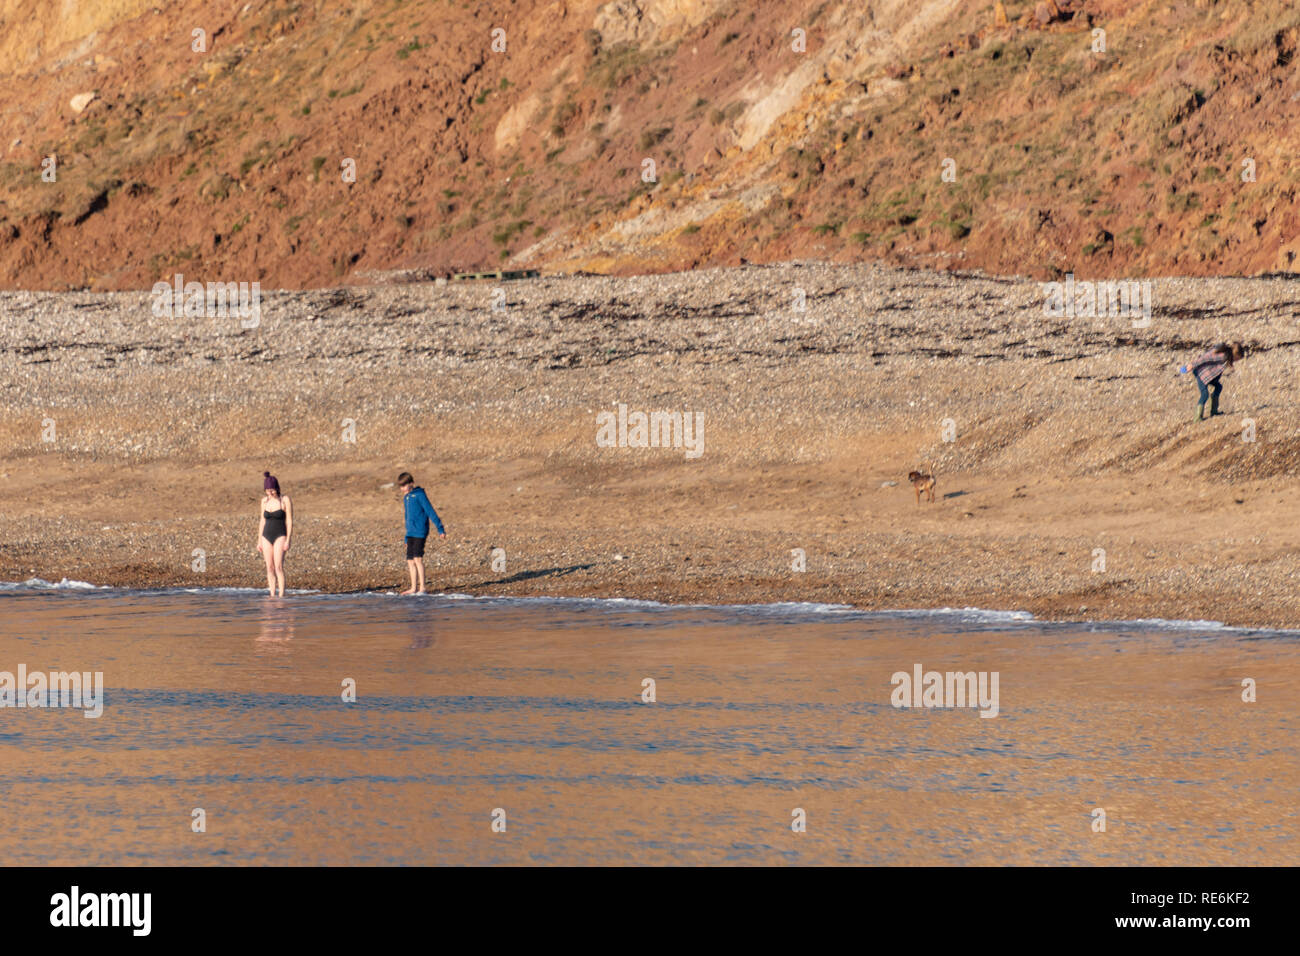 Wareham, UK. Sunday 20th January 2019. Two brave souls go for a swim off Worbarrow Beach on the Jurassic Coast in 4 degree cold but sunny weather. Other people are wrapped up in warm coats. Credit: Thomas Faull/Alamy Live News Stock Photo